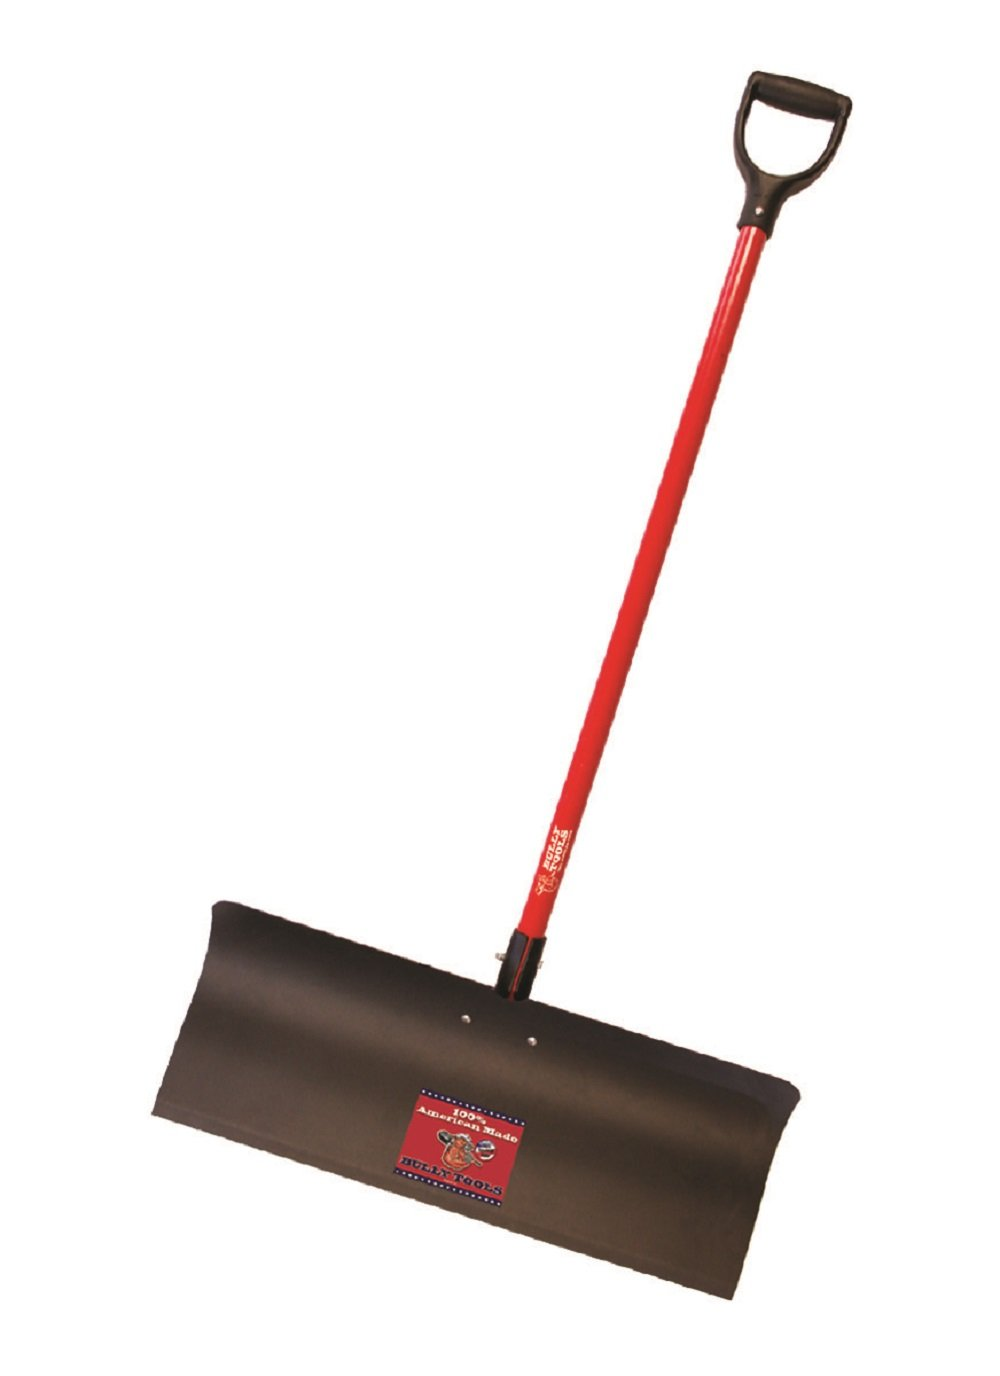 Bully Tools 92819 Steel Snow Pusher with Fiberglass D-Grip Handle, 30'' by Bully Tools